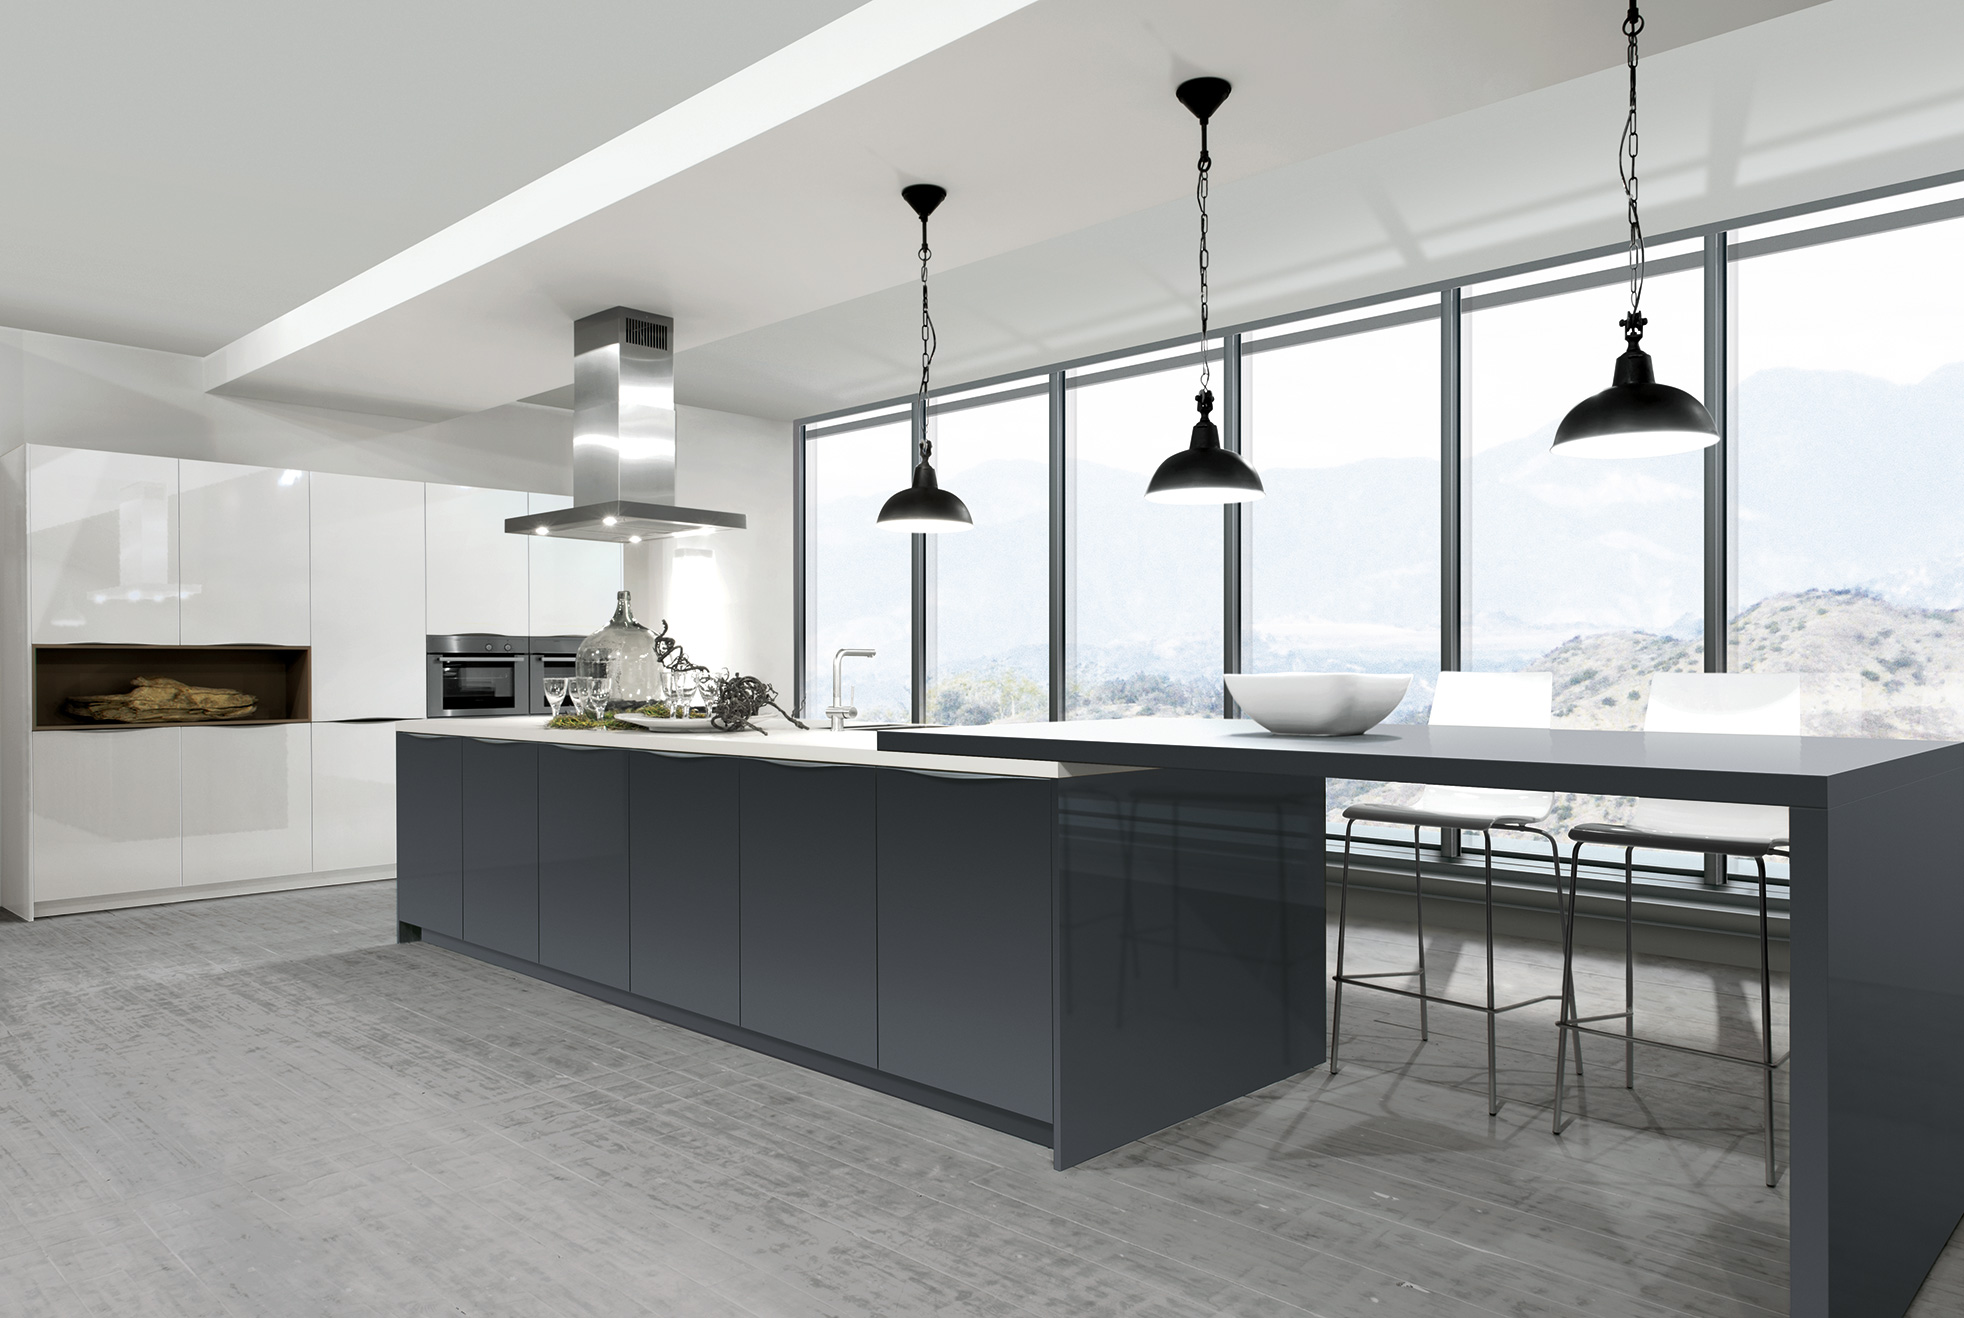 Arbeitsplatte Küche Schwarz 3m Rotpunkt Kitchens Uk High End Bespoke Kitchens